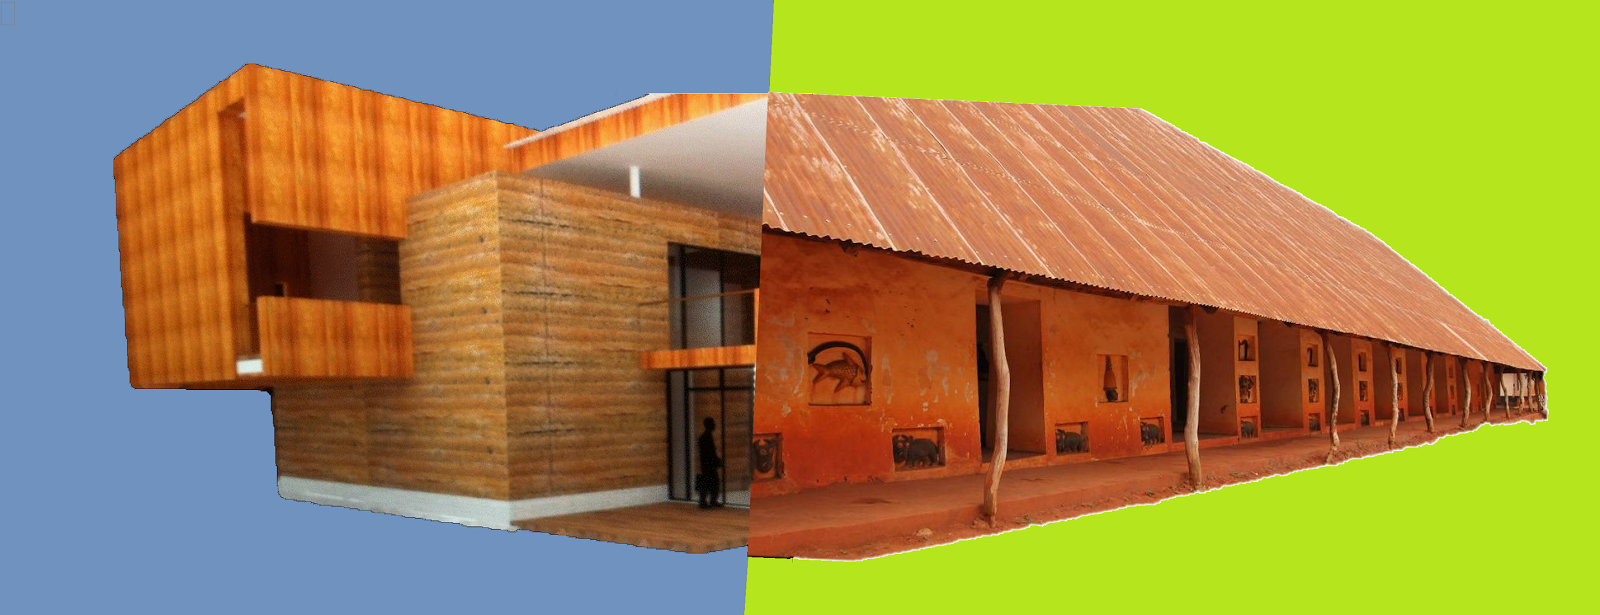 Architecture africaine moderne 28 images une maison for Architecture africaine